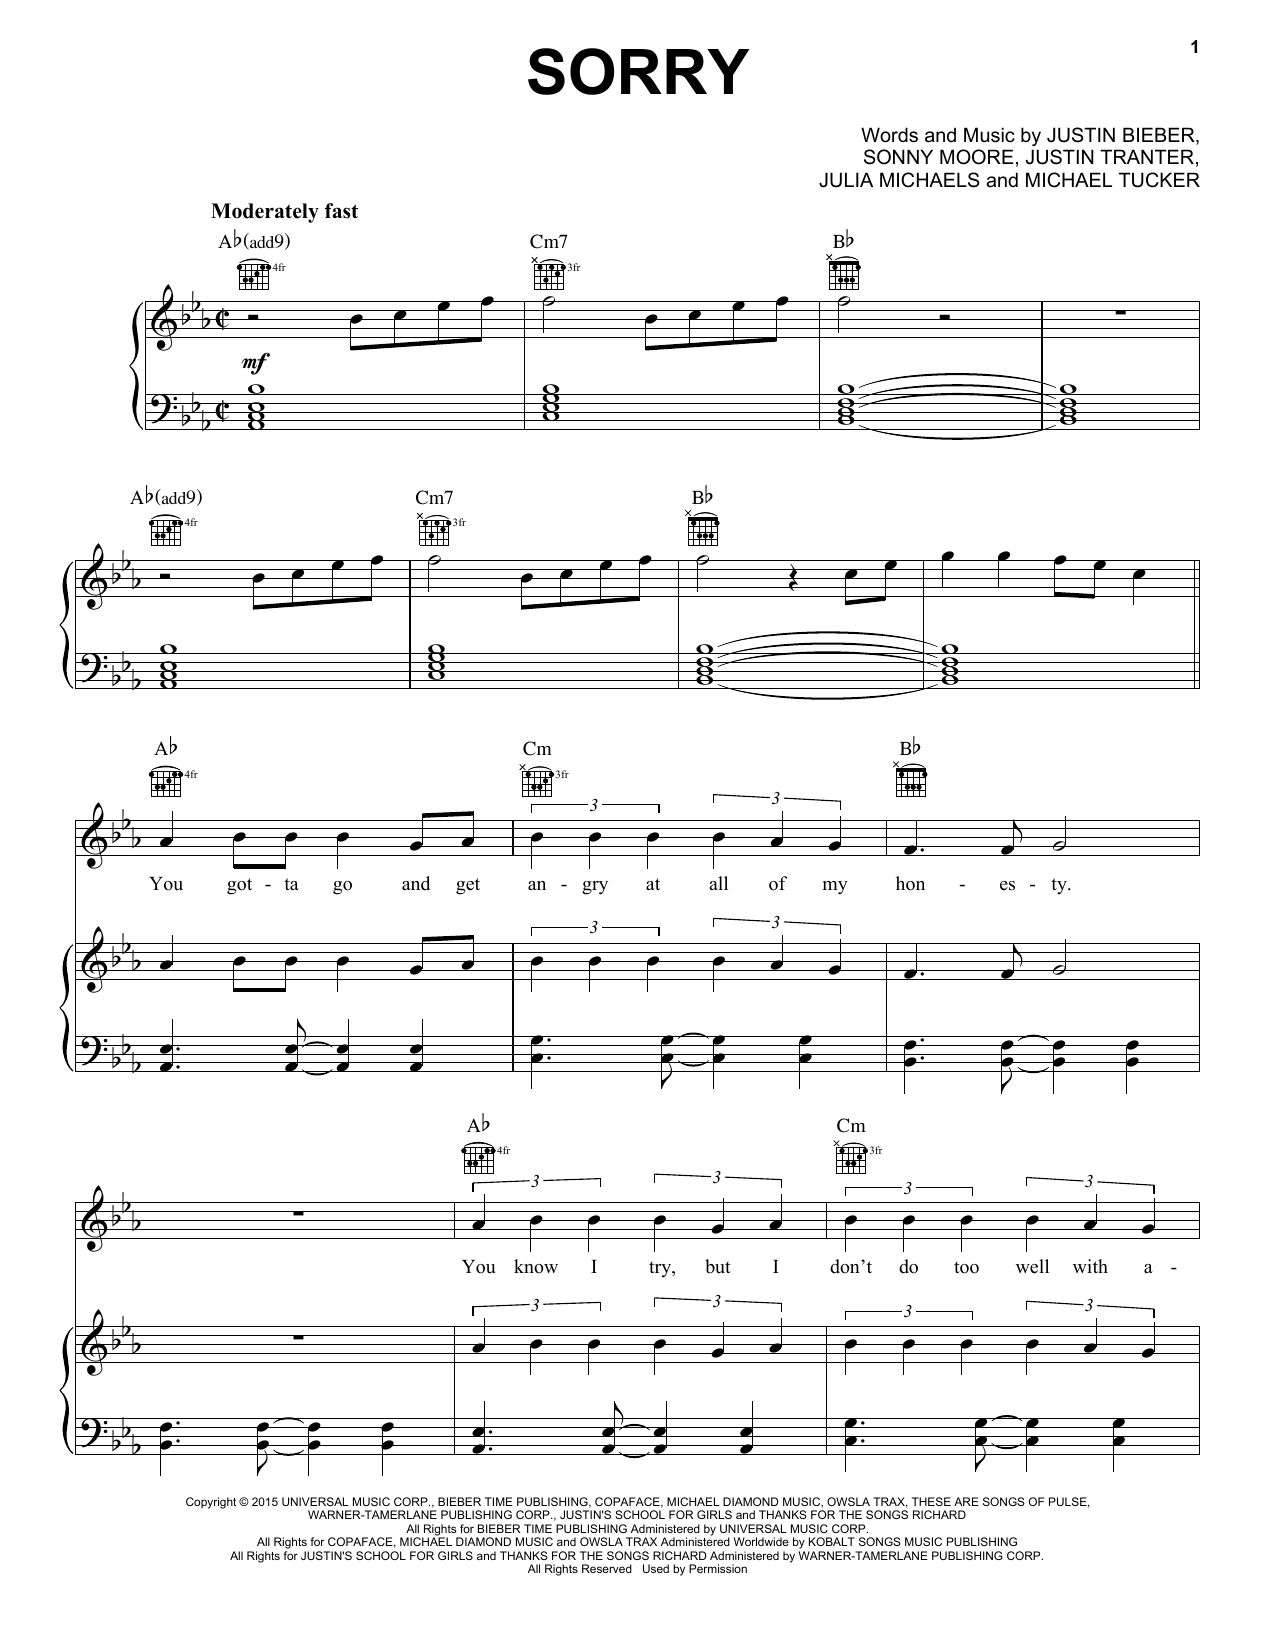 Sorry sheet music by Justin Bieber (Piano, Vocal u0026 Guitar (Right-Hand Melody) u2013 162582)